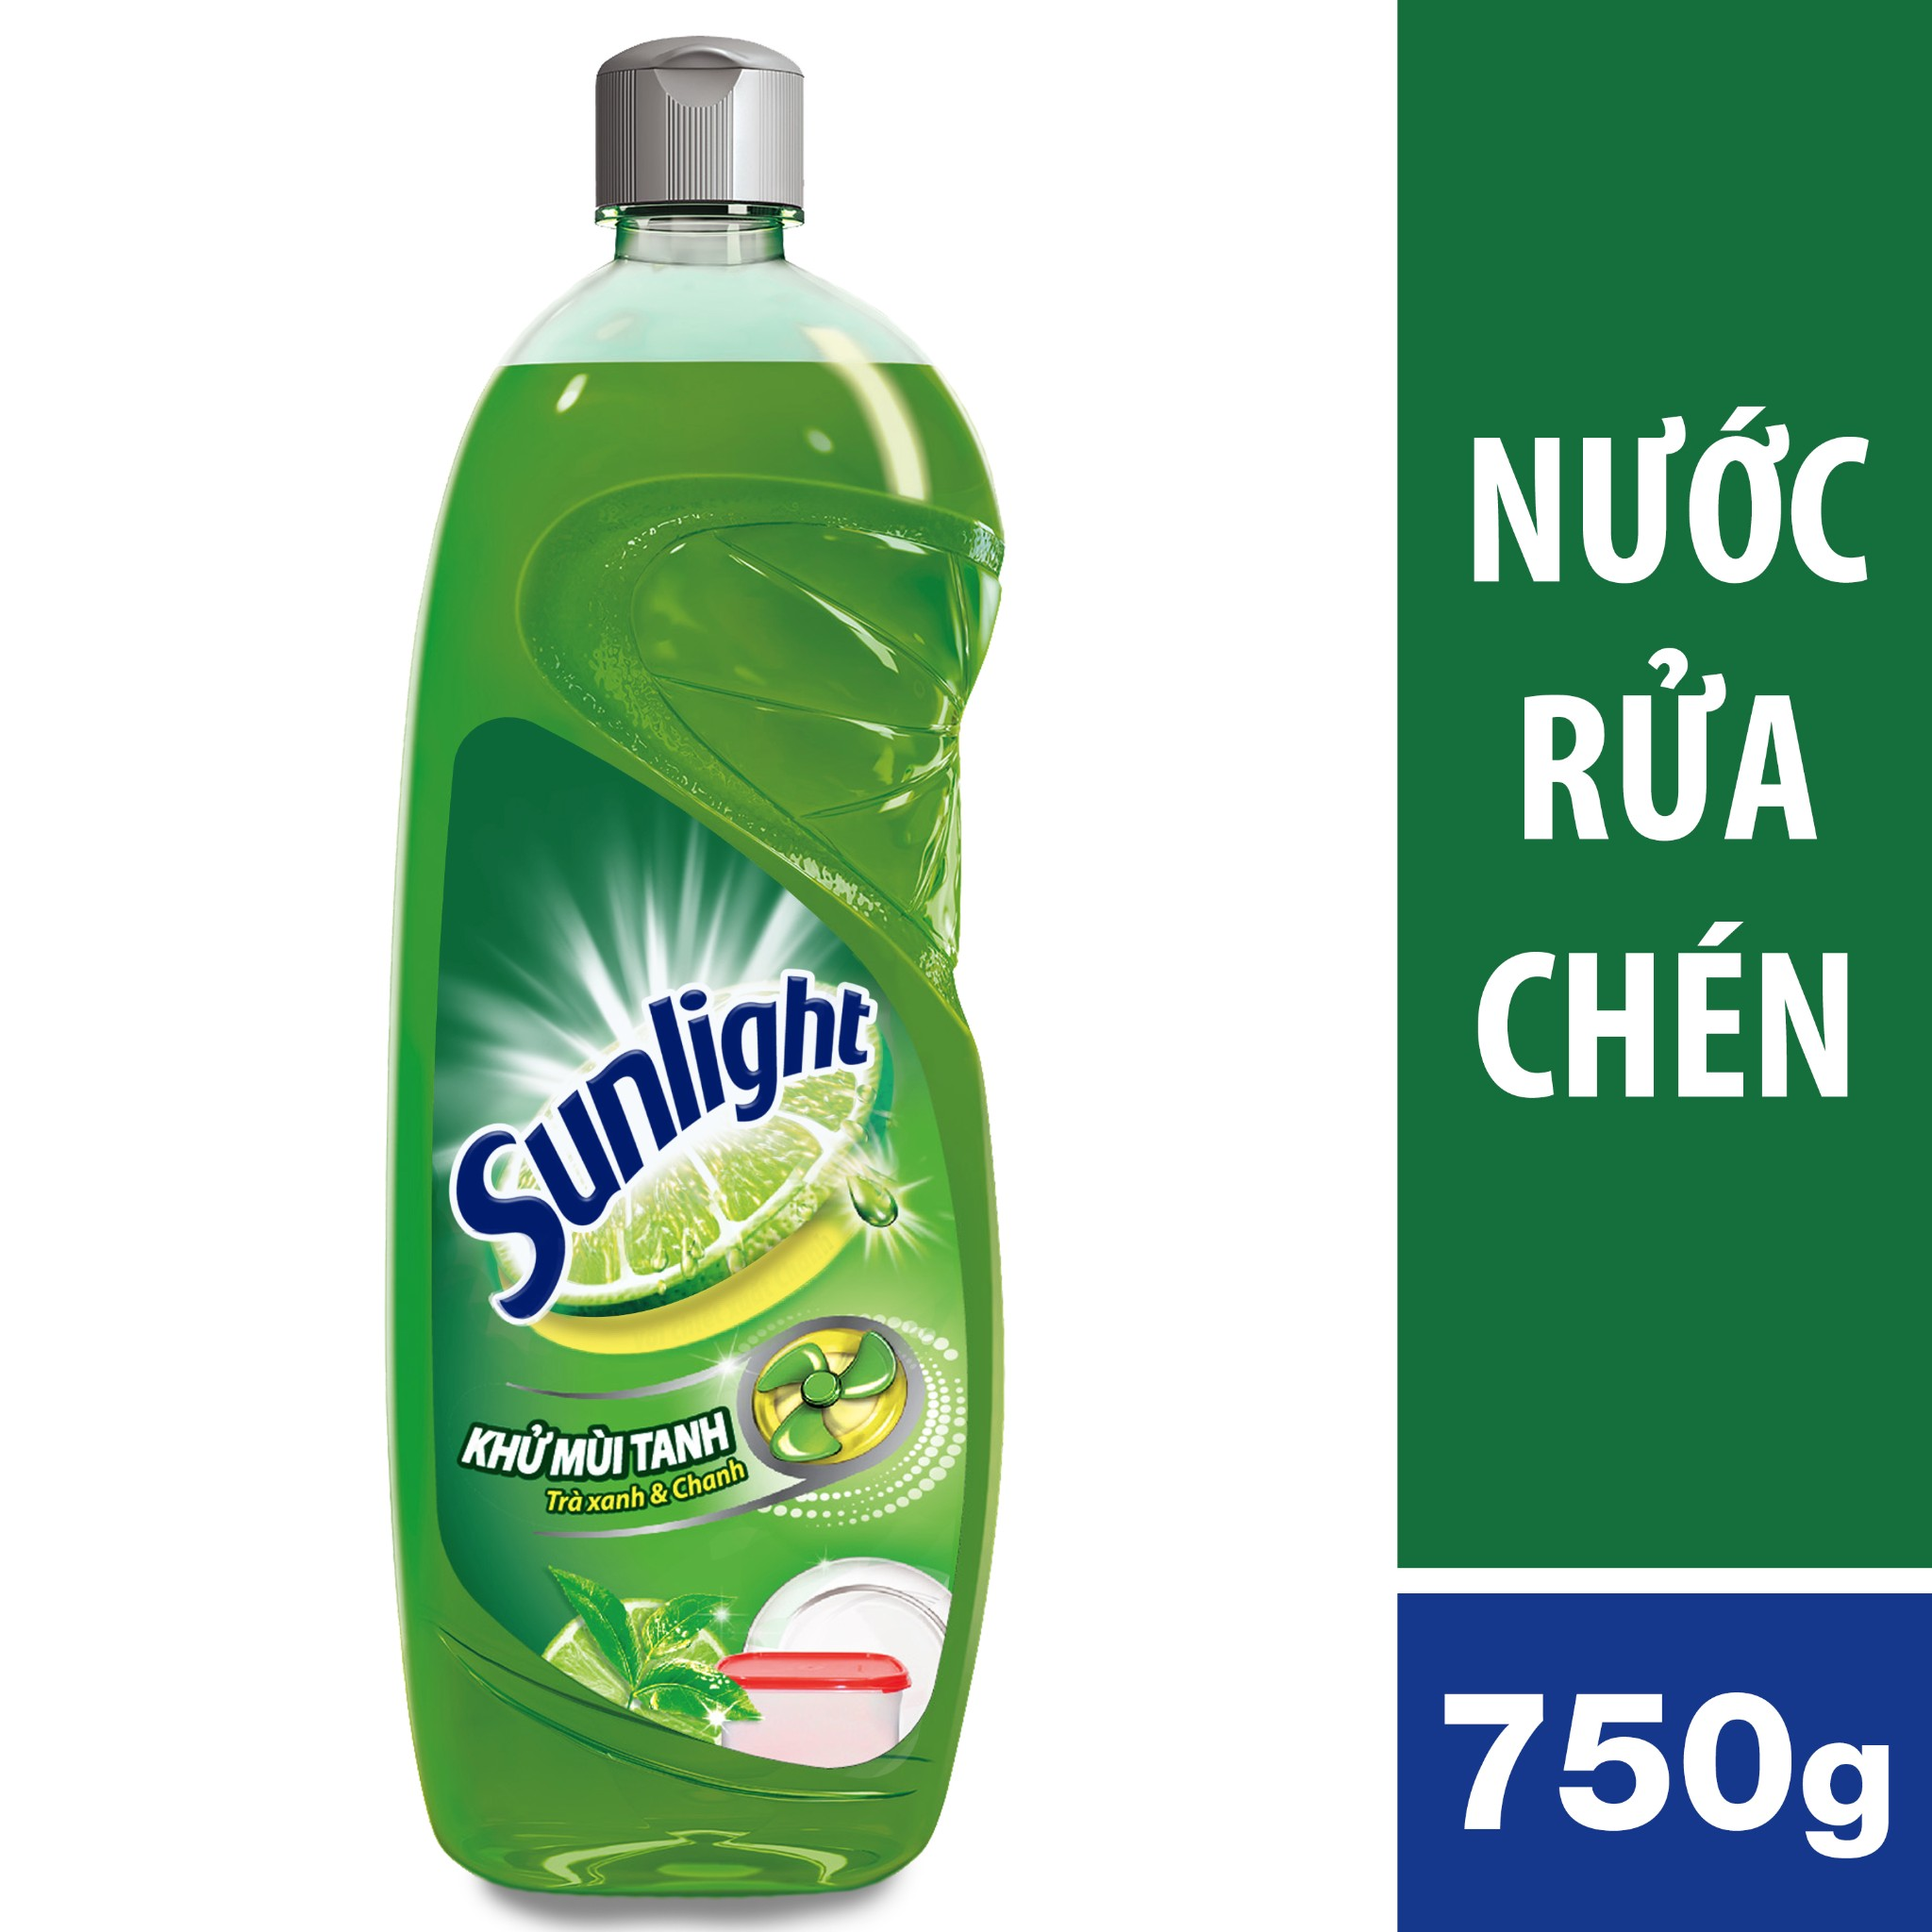 NƯỚC RỬA CHÉN SUNLIGHT TRA XANH 750G | Sunlight Dishwashing Gel Green Tea & Lime Bottle 750g